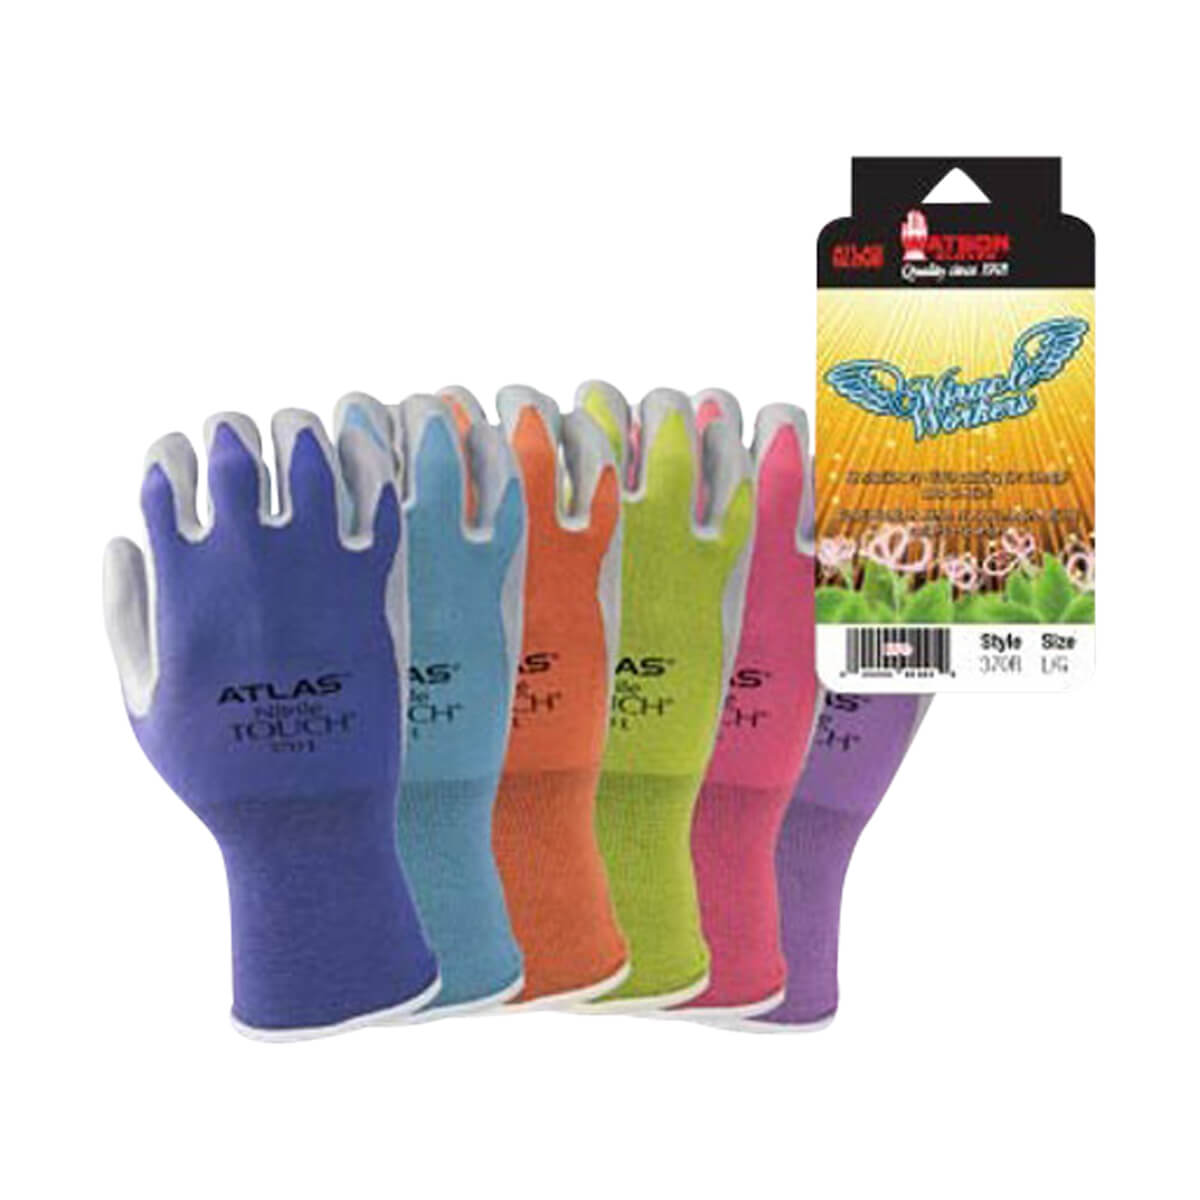 Atlas® Miracle Workers Gloves